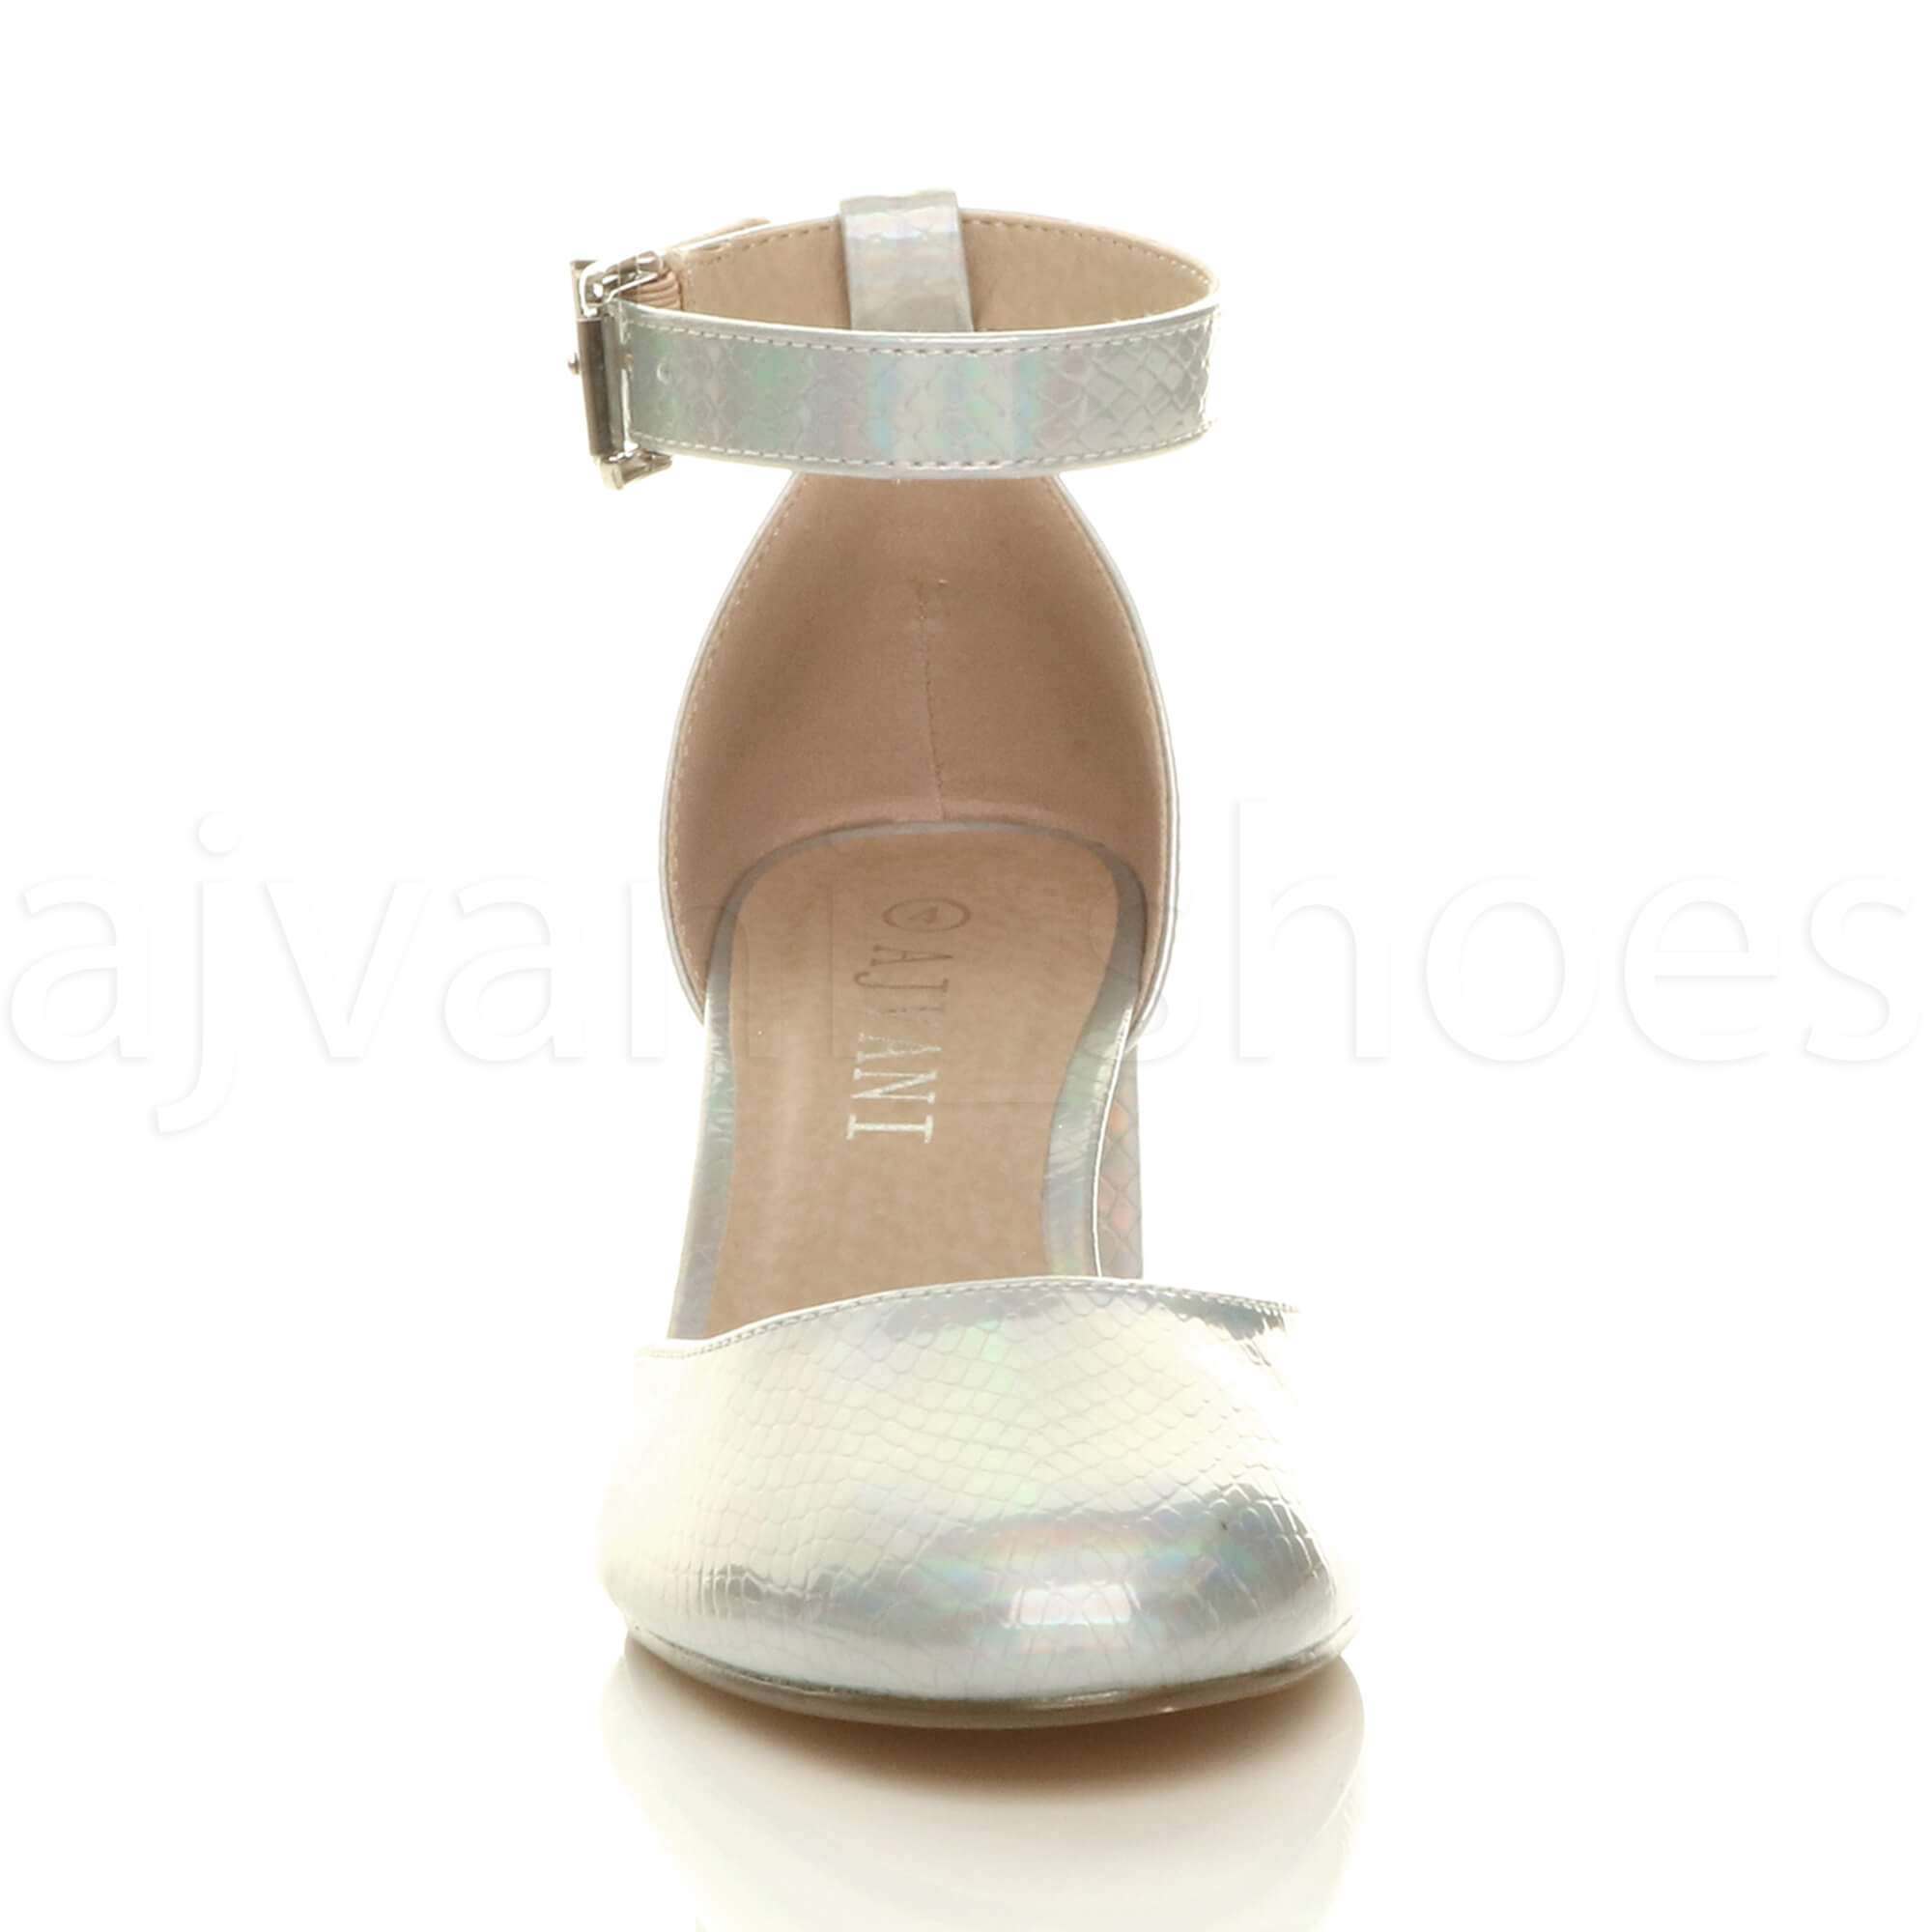 WOMENS-LADIES-LOW-MID-BLOCK-HEEL-ANKLE-STRAP-MARY-JANE-COURT-SHOES-SANDALS-SIZE thumbnail 167